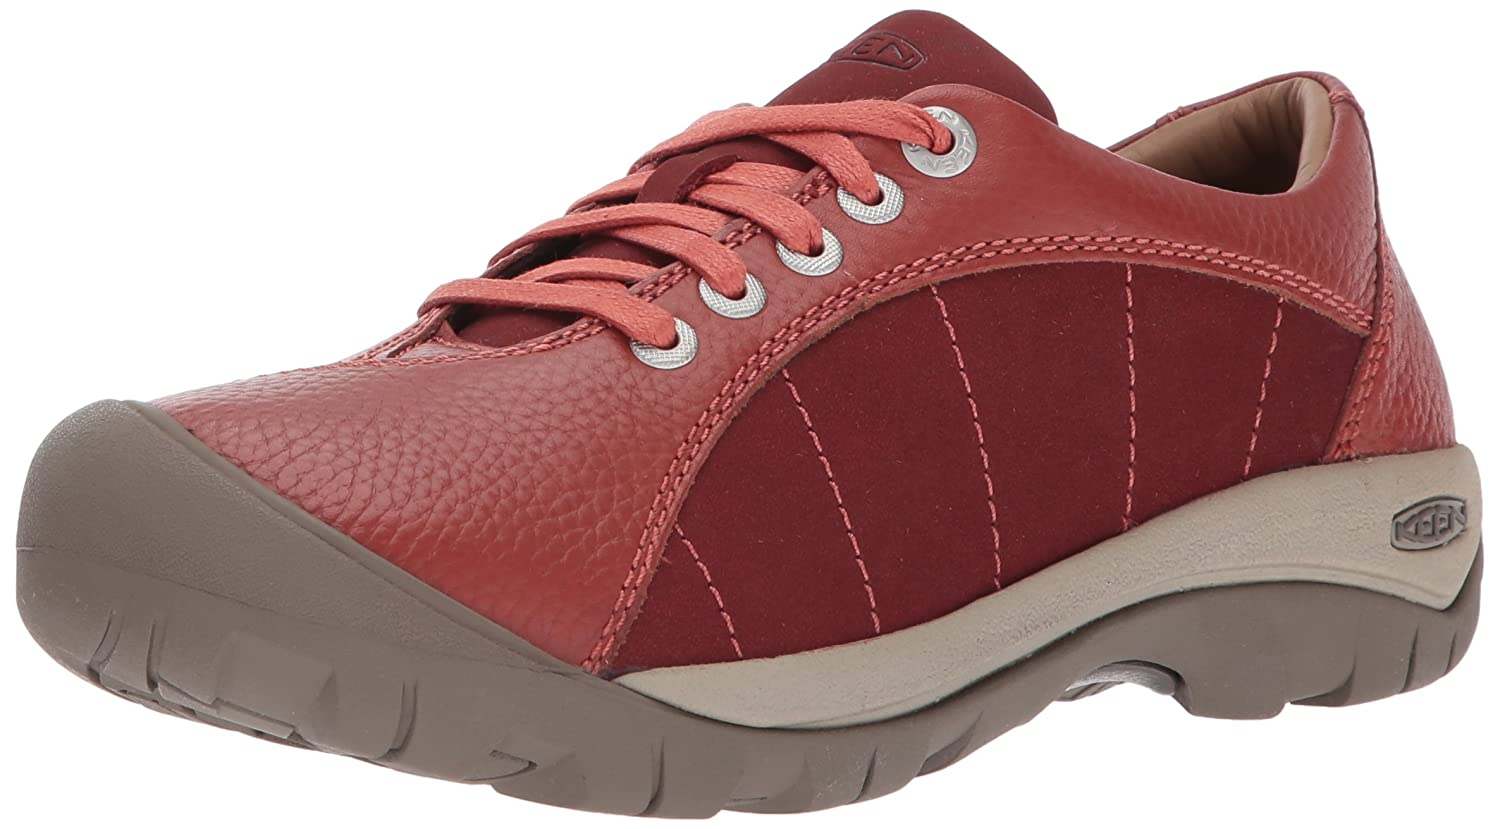 Keen Womens Presidio Leather Trainers 38 EU|Tandori Spice